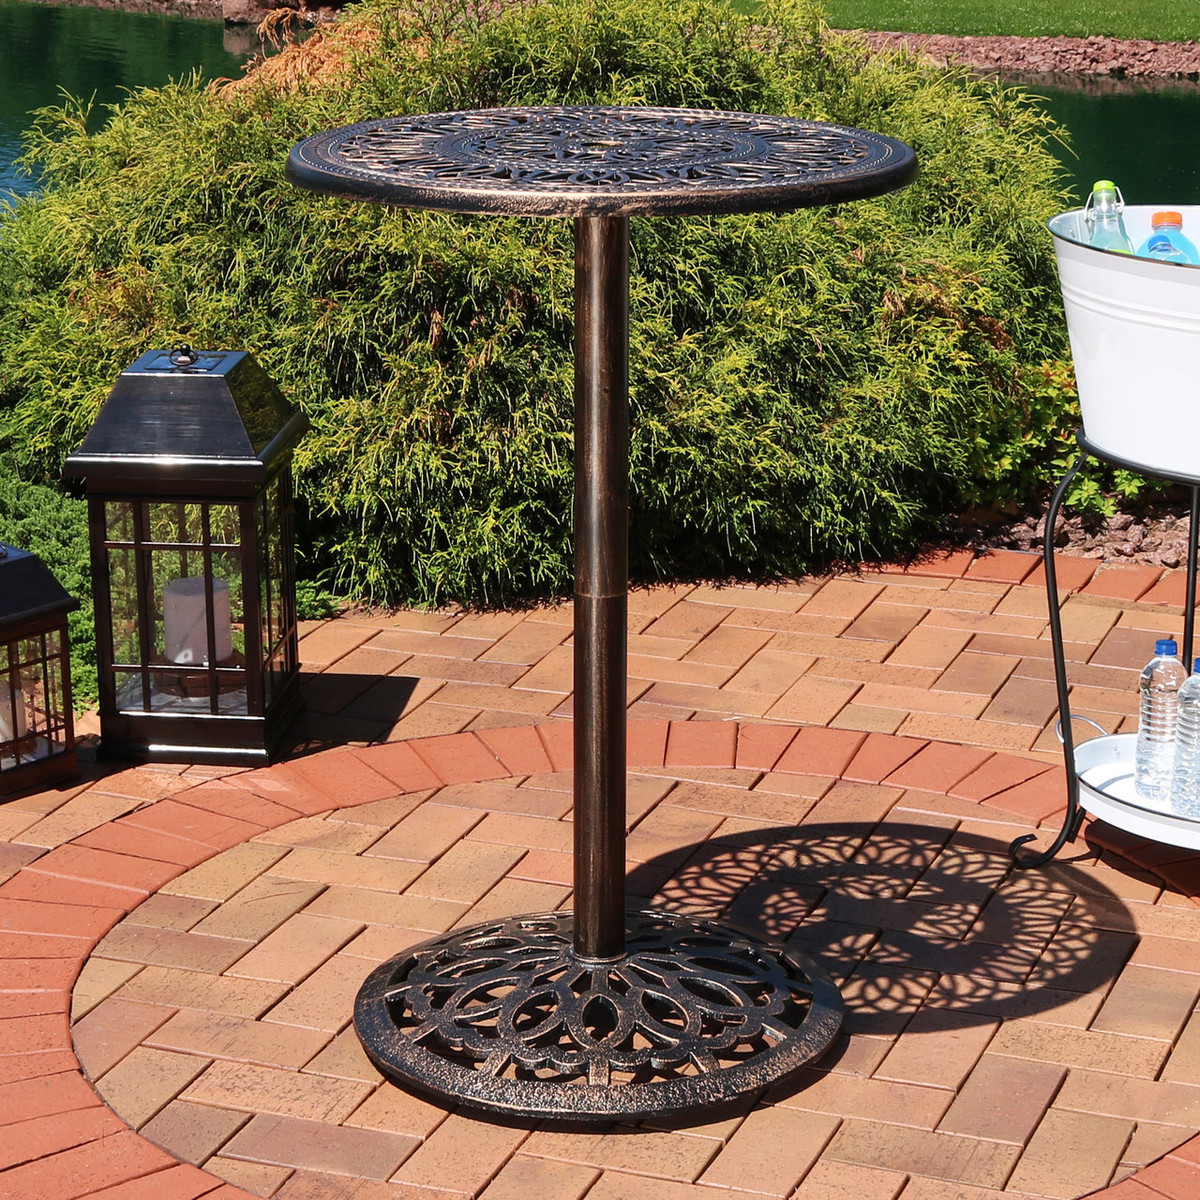 Sunnydaze Bar Height Patio Table Durable Cast Iron 40 Inch Tall Outdoor Round High Top Pub Table 26 Inch Diameter